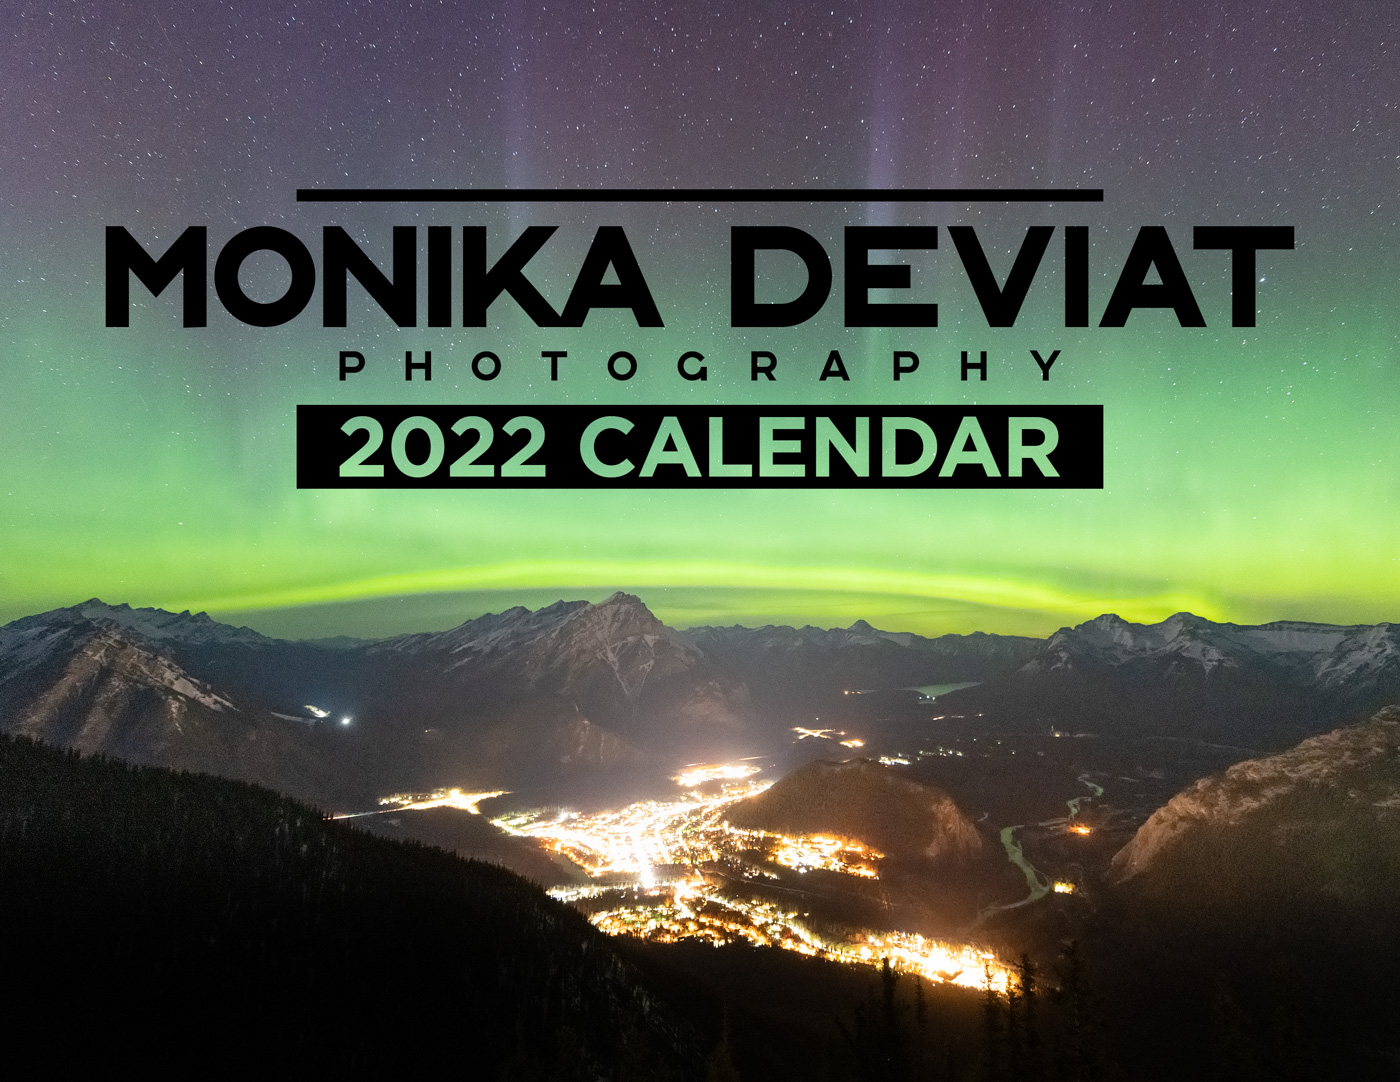 2022 Monika Deviat Photography Calendar Cover Northern Lights over the town of Banff